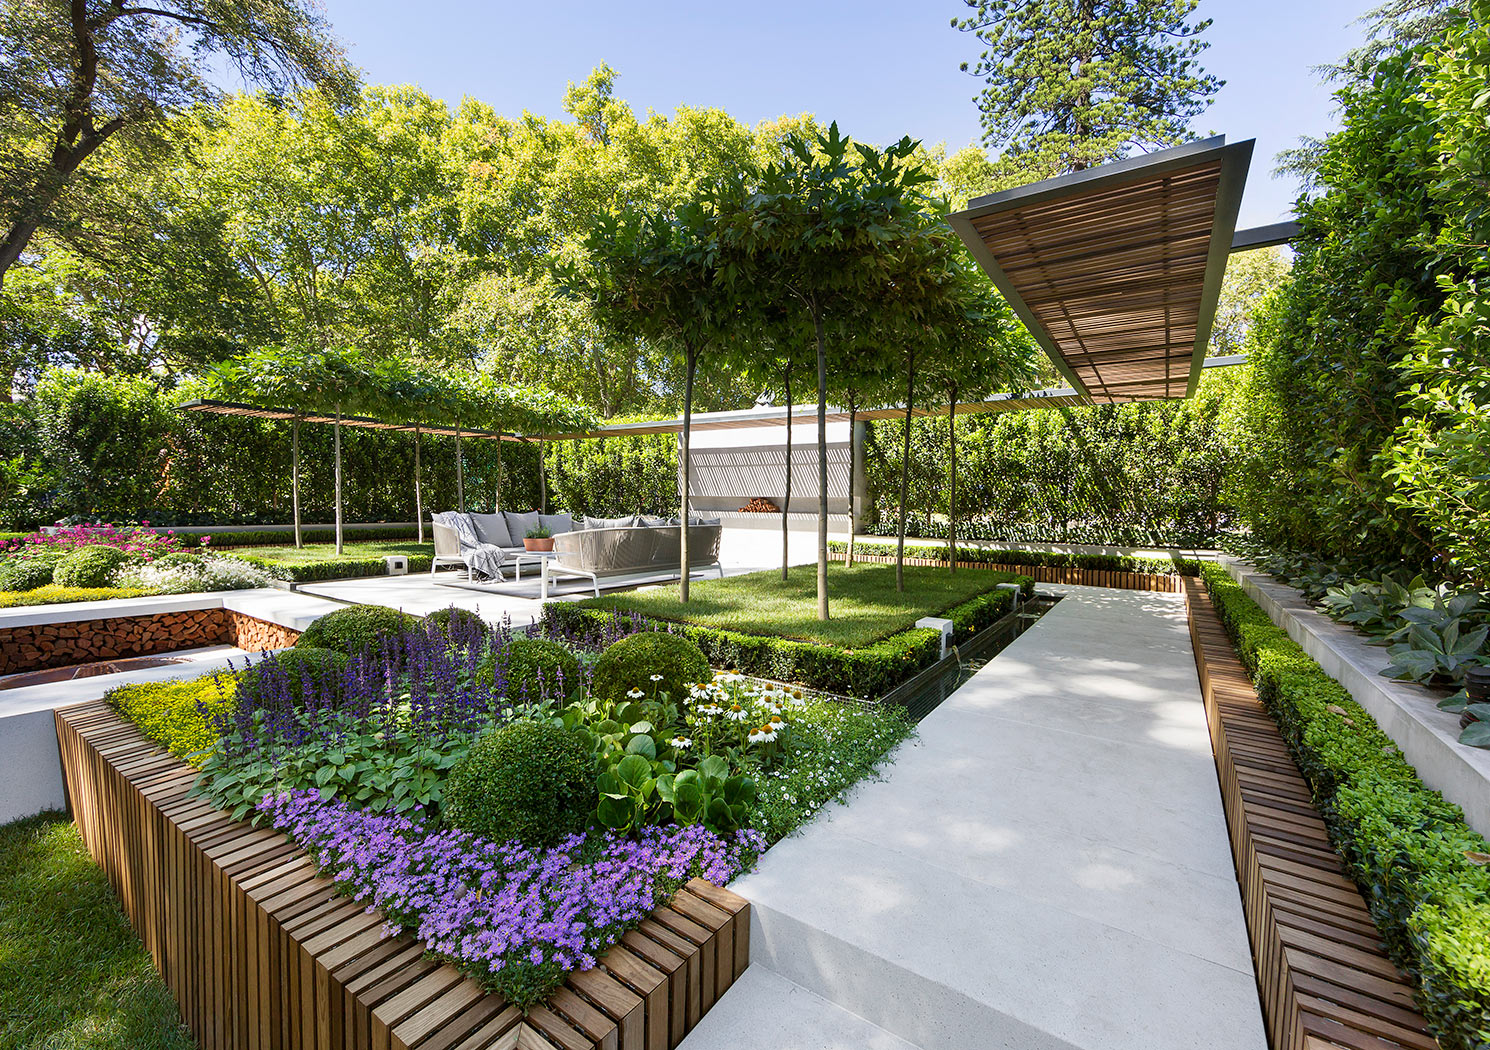 Landscape garden designer melbourne nathan burkett design for Outdoor garden design